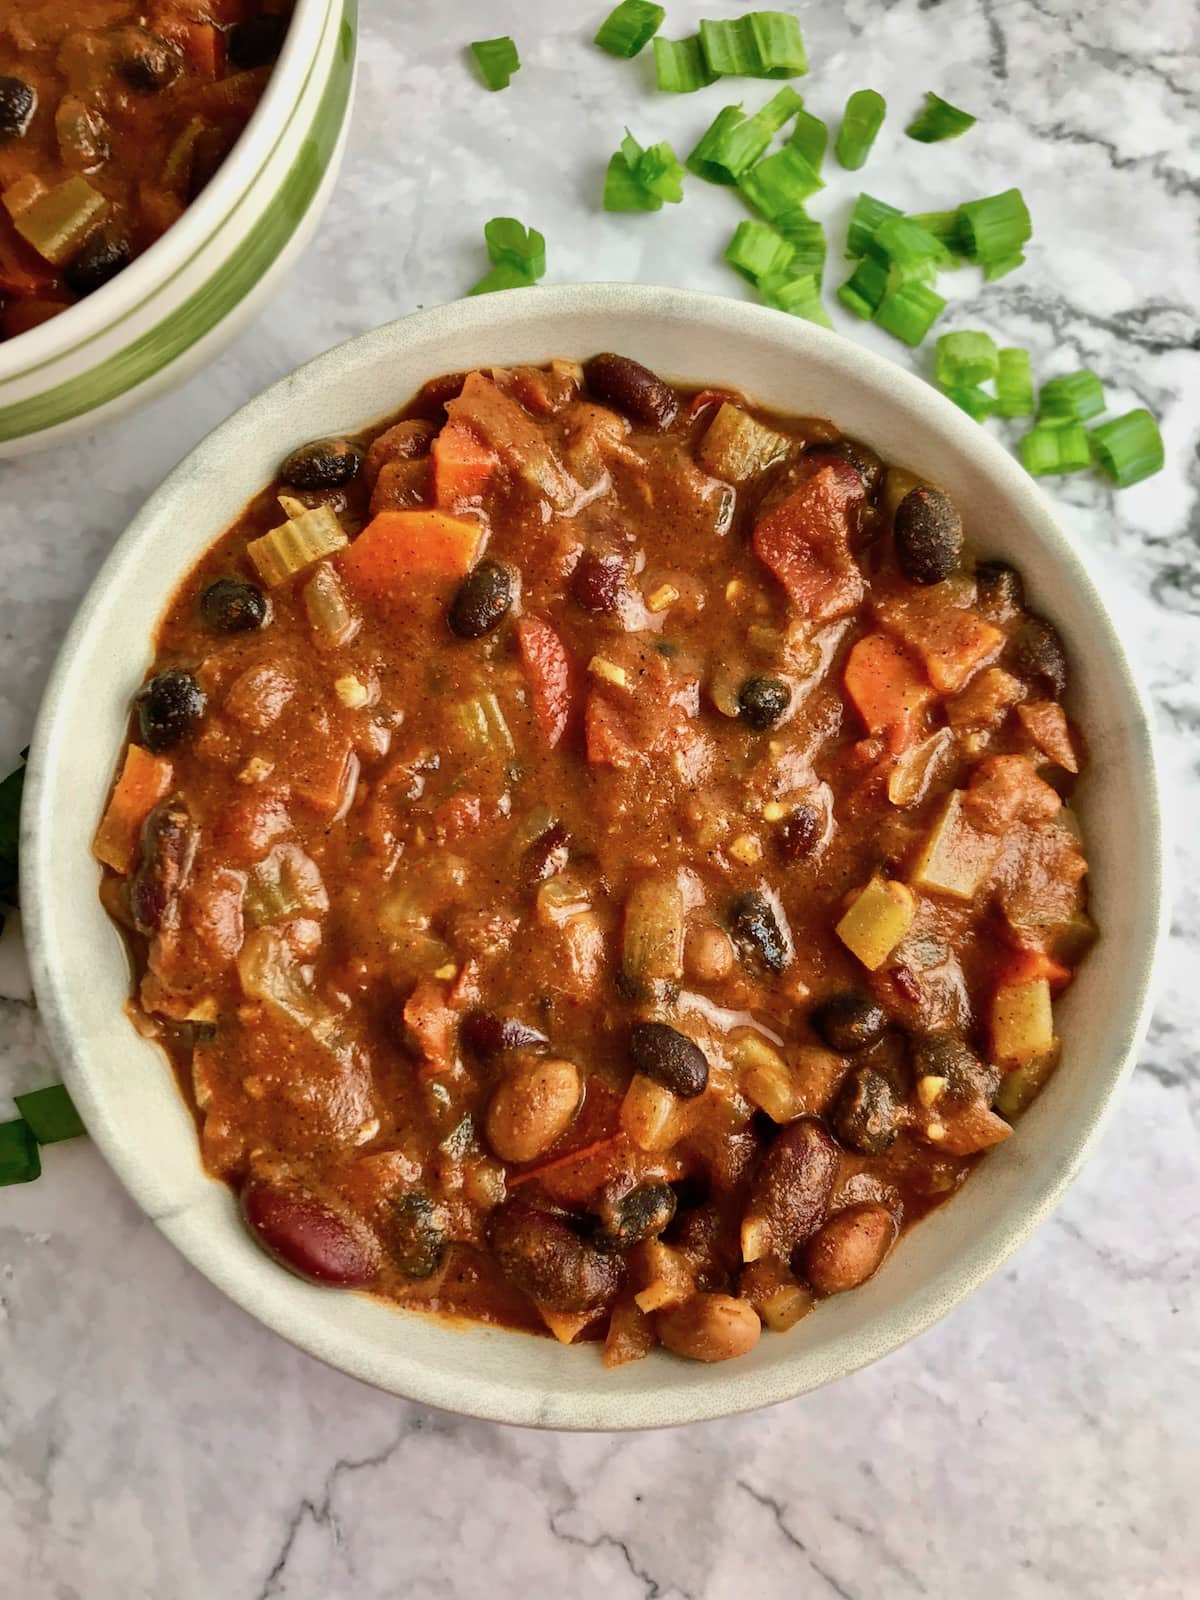 A bowl of veggie and bean chili on a table with chopped green onion.